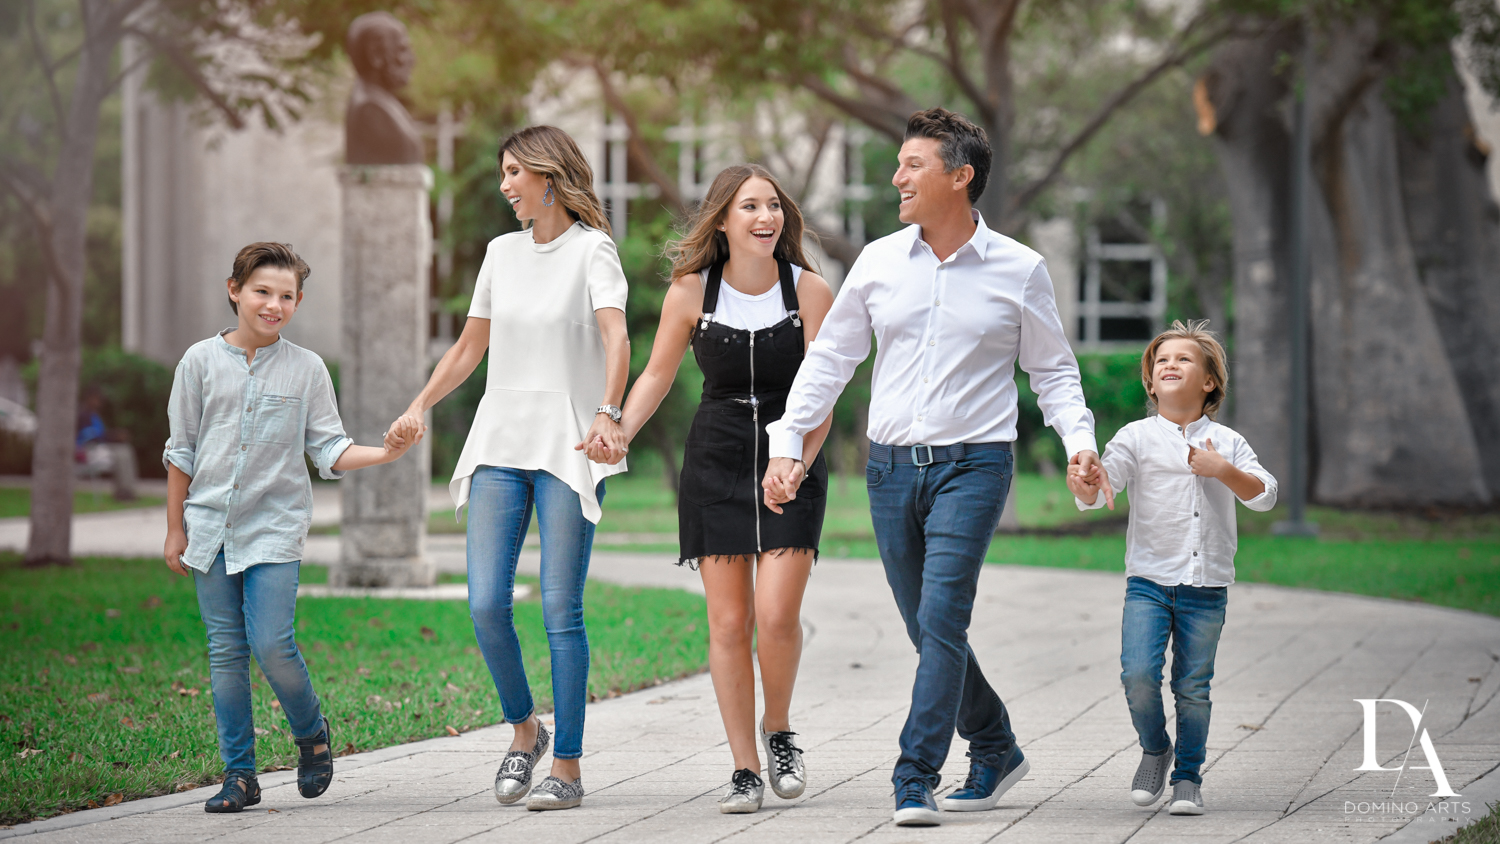 Fun family Waterfront Photo Session in Miami by Domino Arts Photography